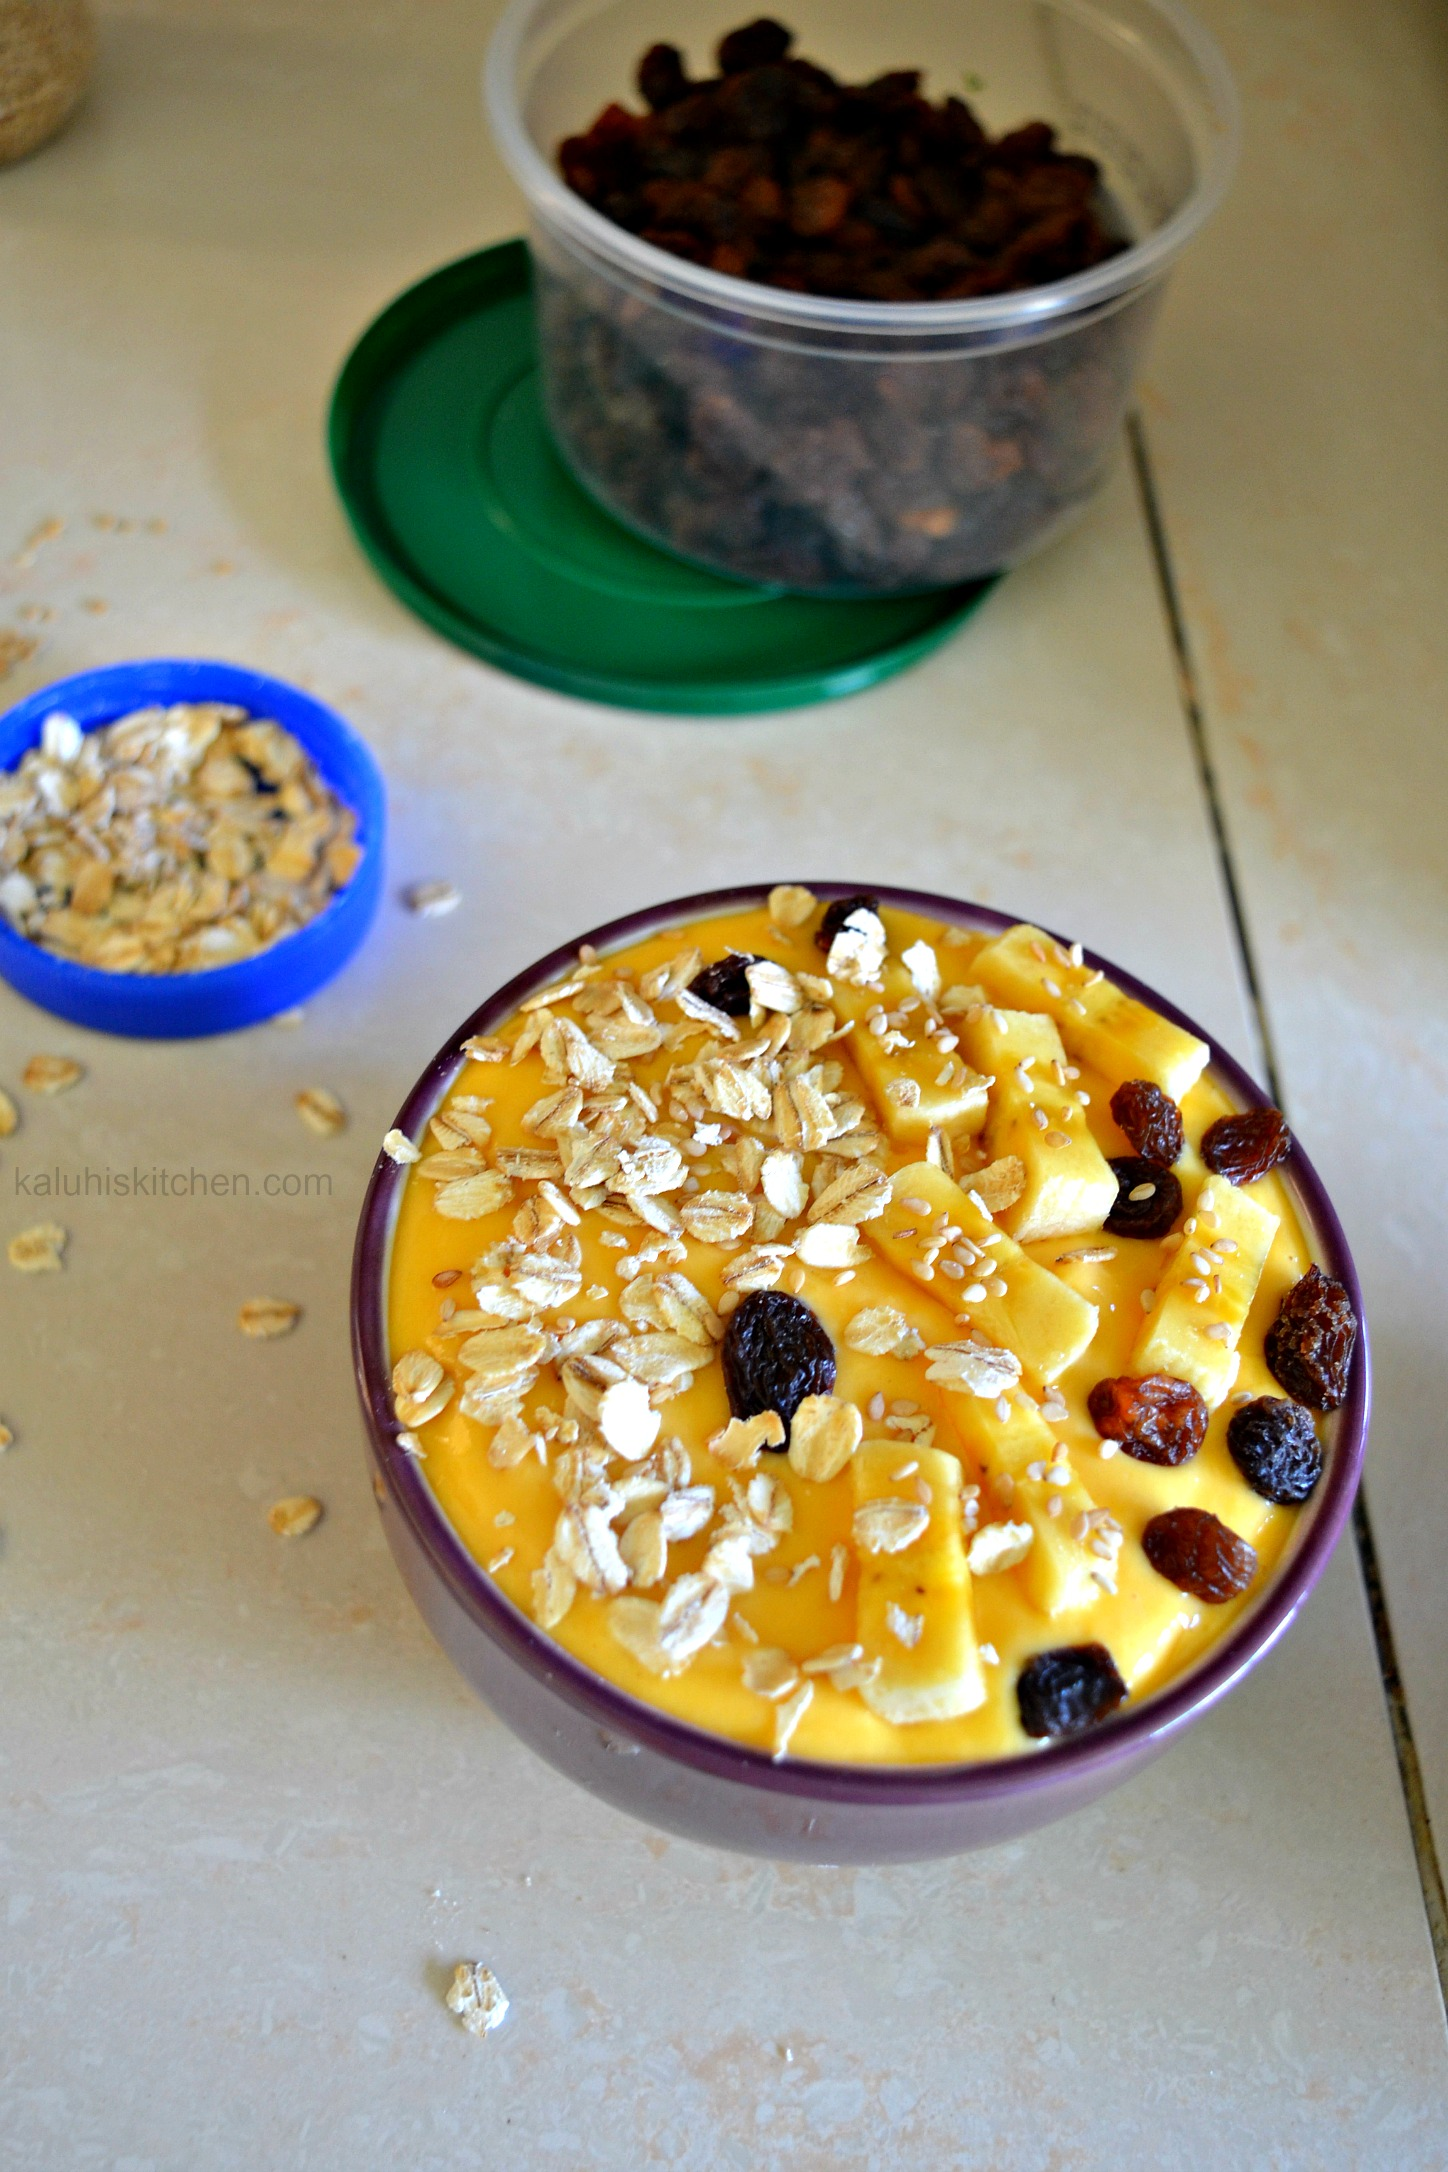 garnishing smootie bowl with a variety of superfoods makes this ideal for brunch or breakfast_mango smoothie bowl_kaluhiskitchen.com